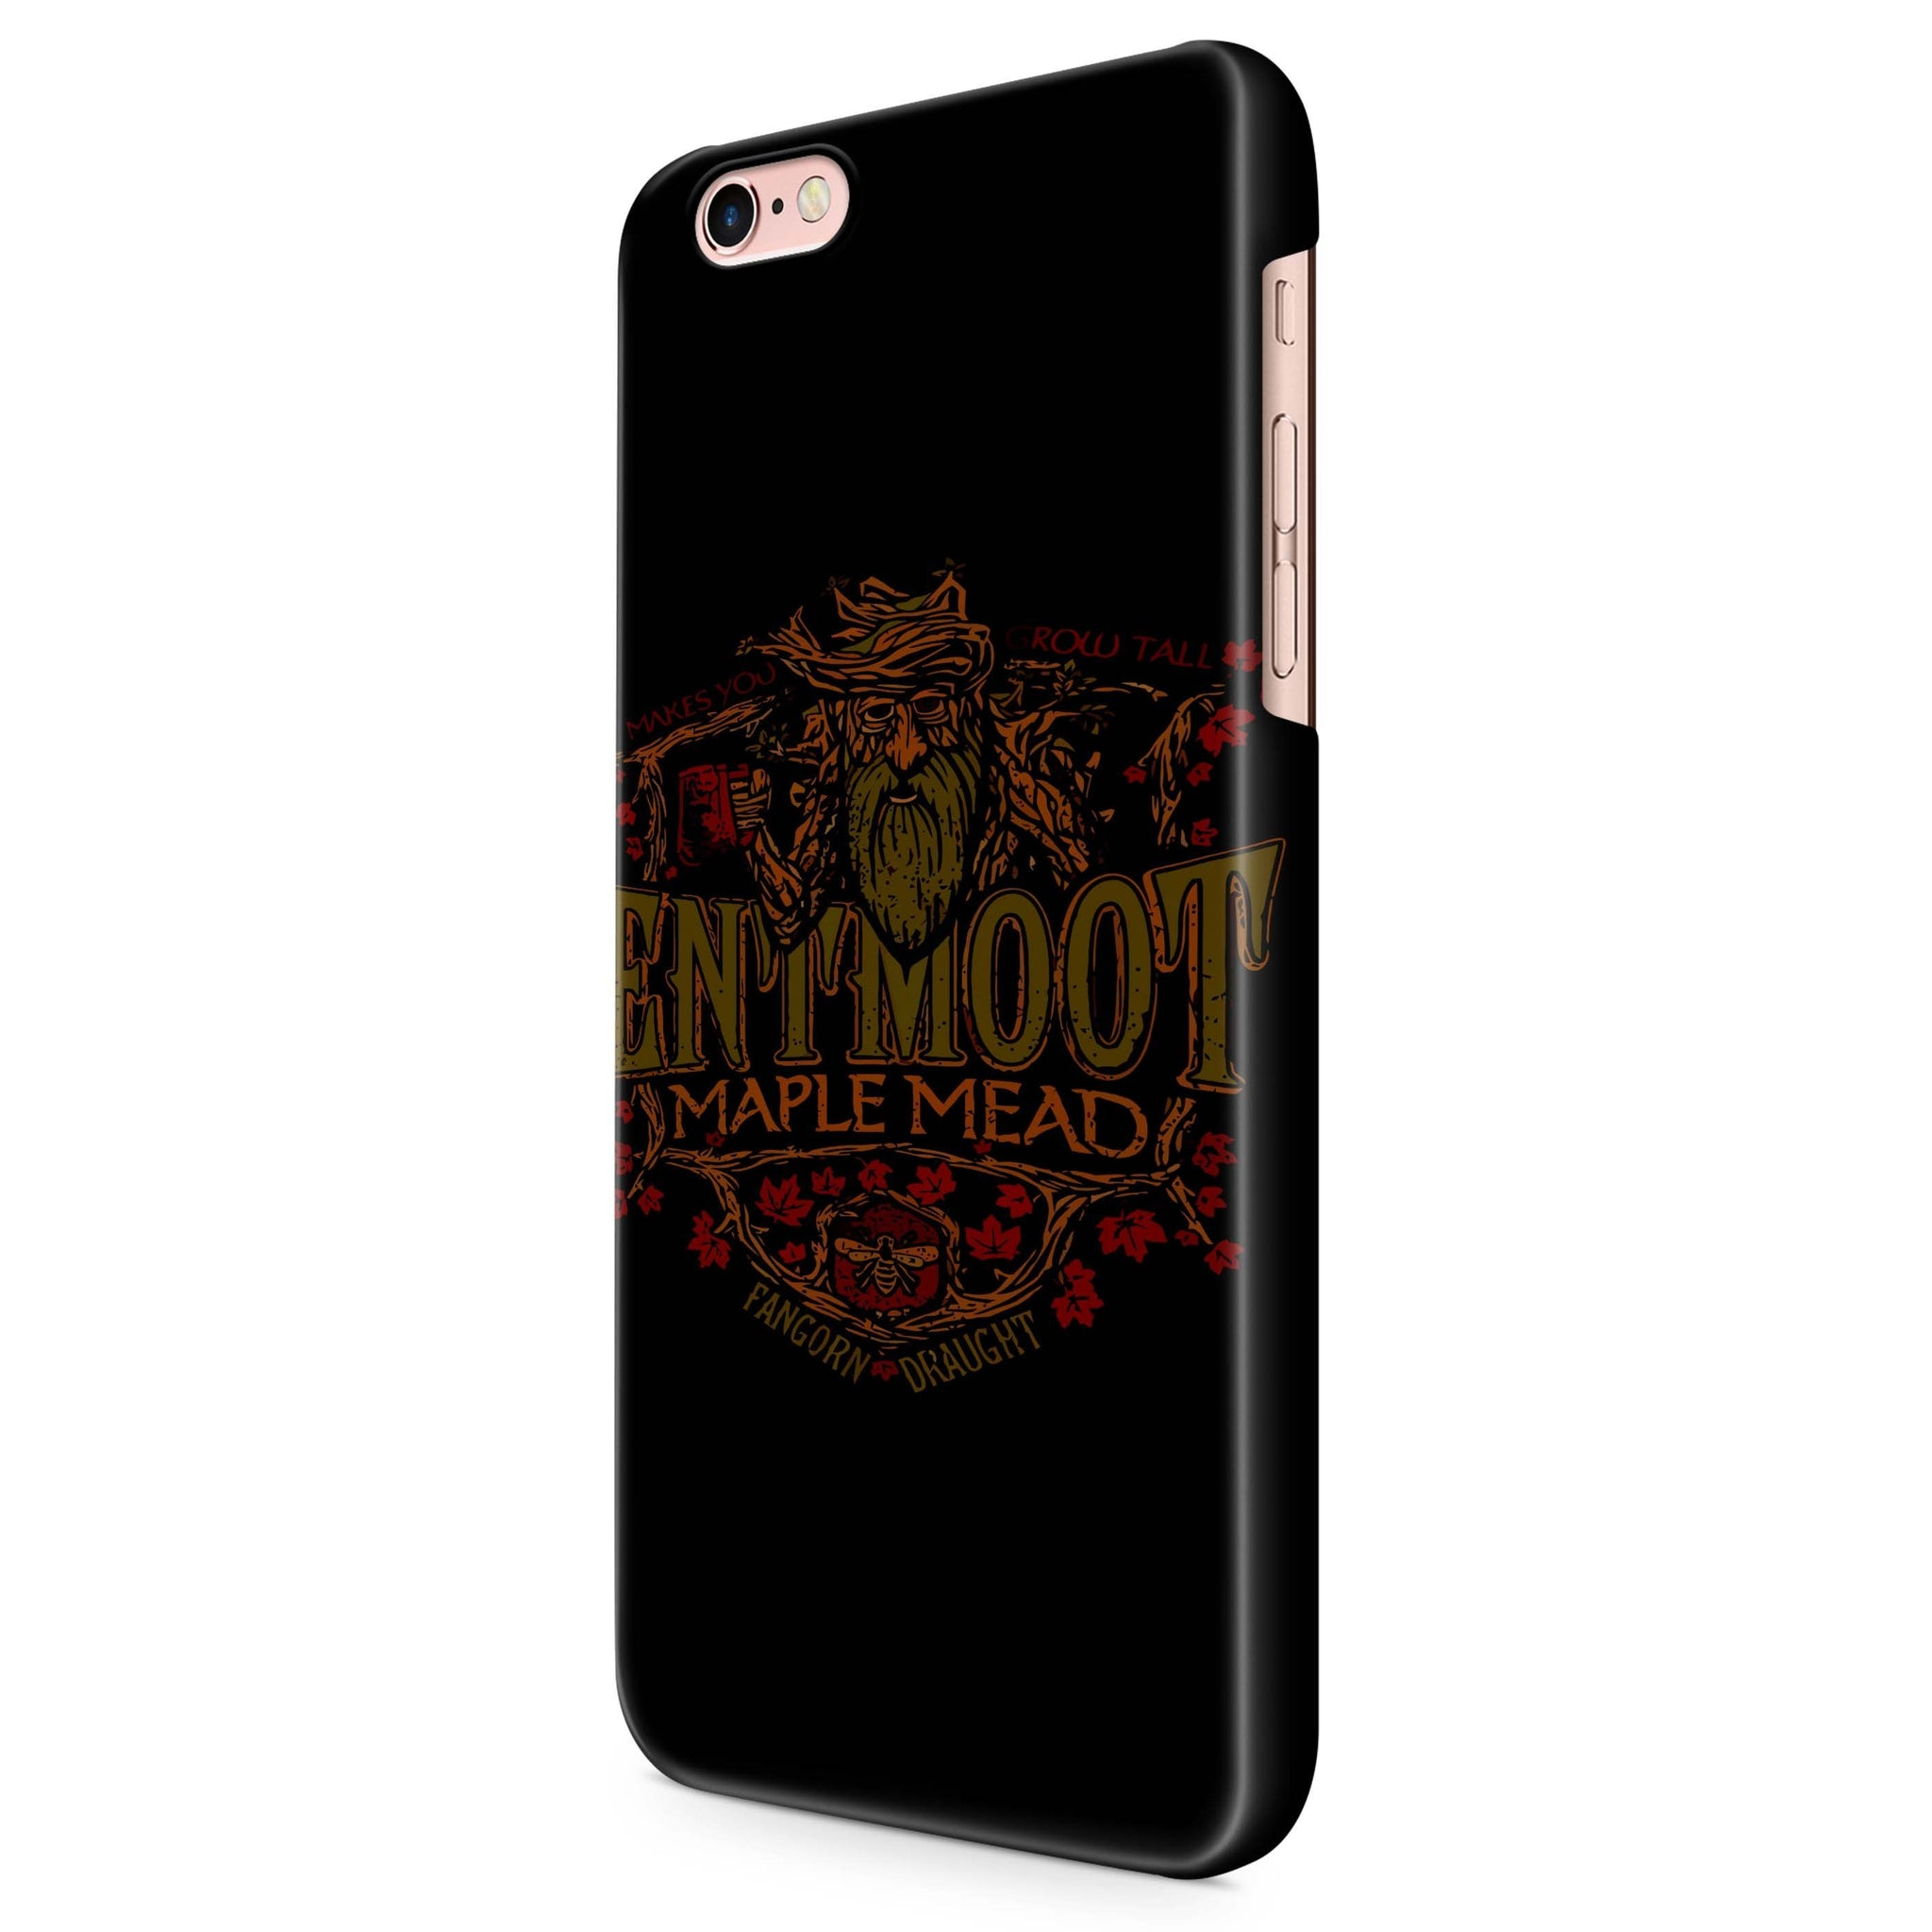 Entmoot Maple Mead iPhone 5 / 5S | 6 / 6S | 6 Plus / 6S Plus 3D Case